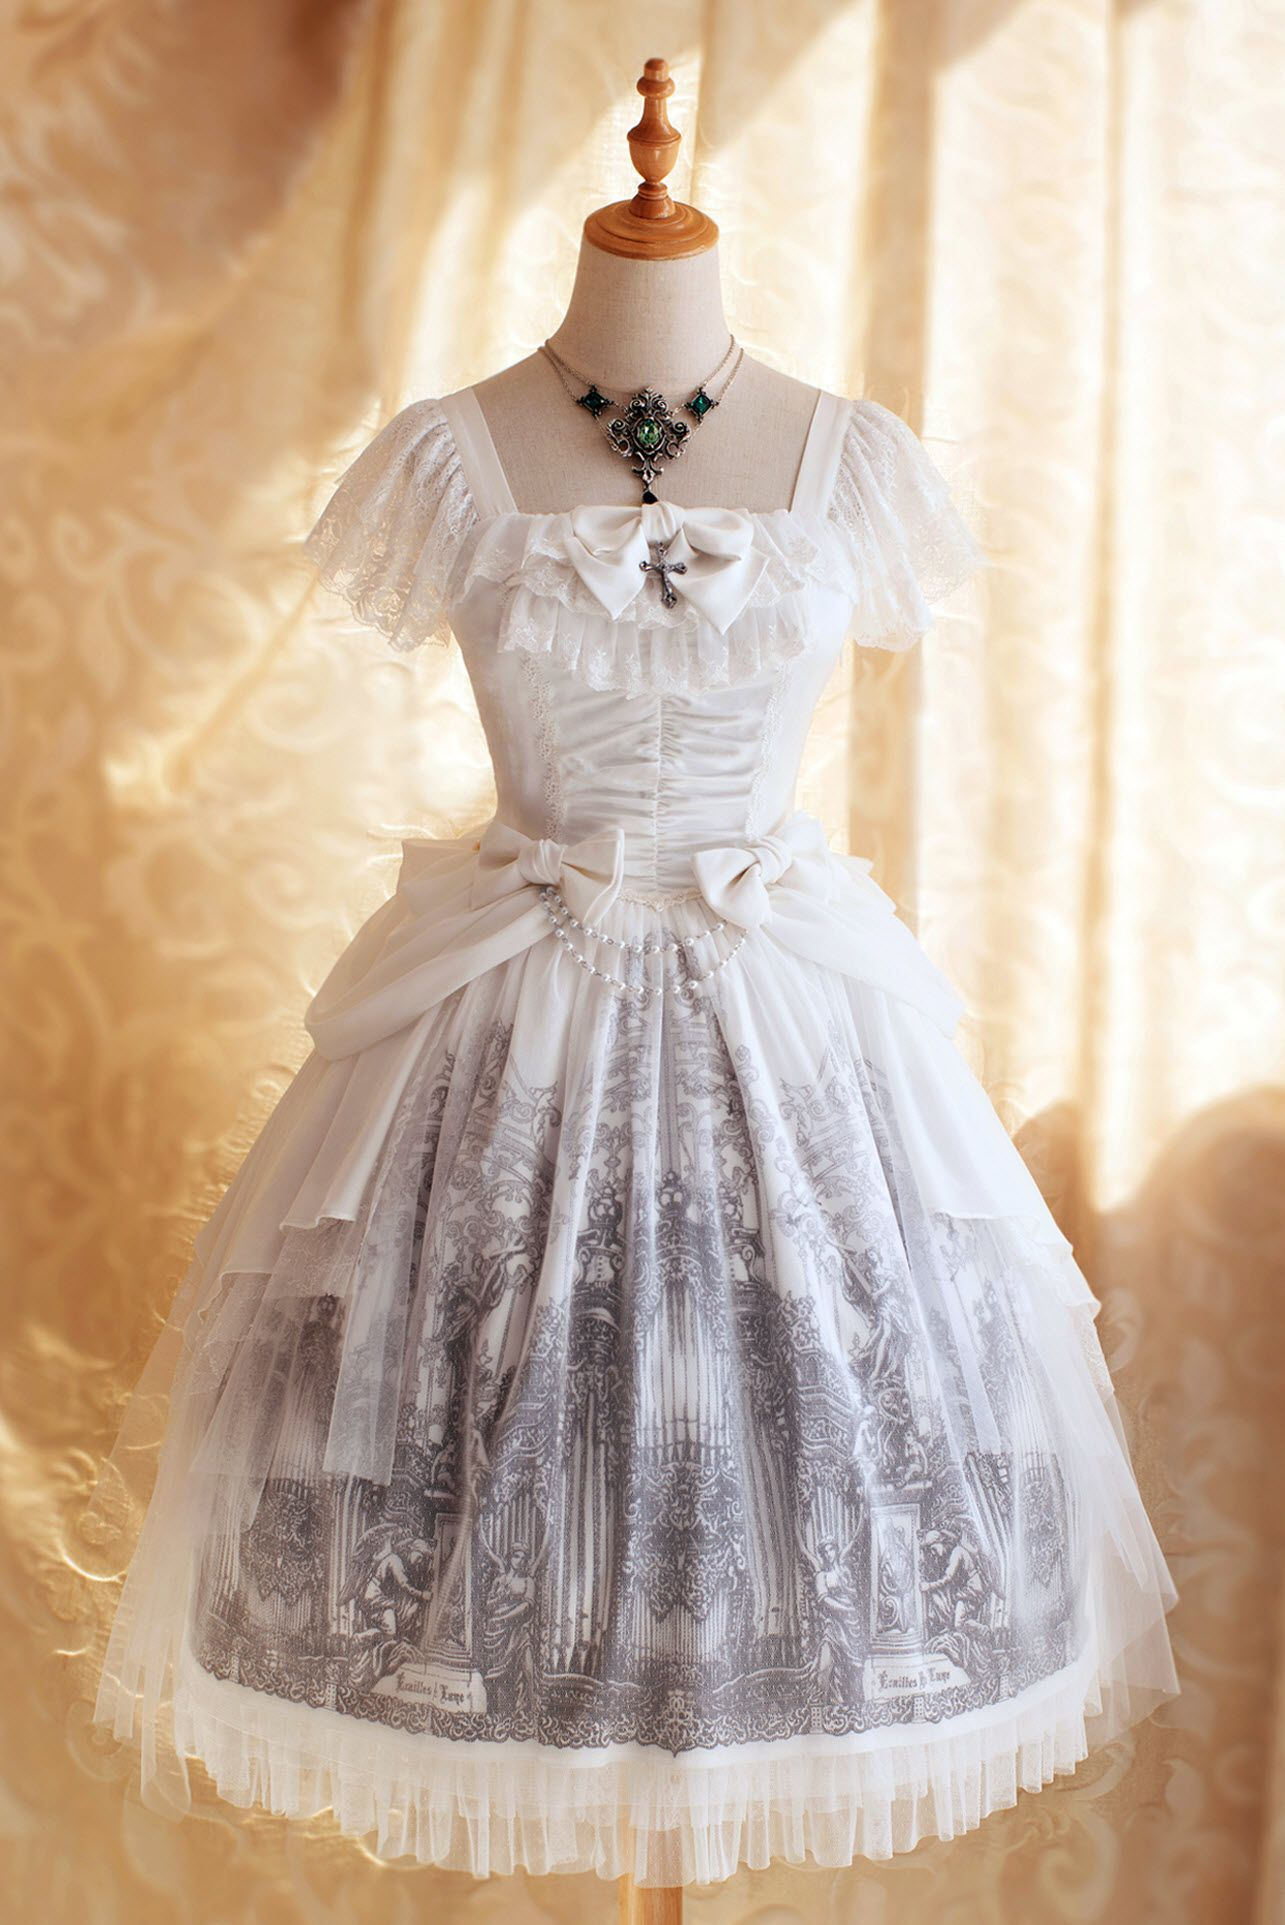 Gothic style wedding dresses  écailles De Lune Forest Of Pipe Organ Gothic Lolita Jumper Dress